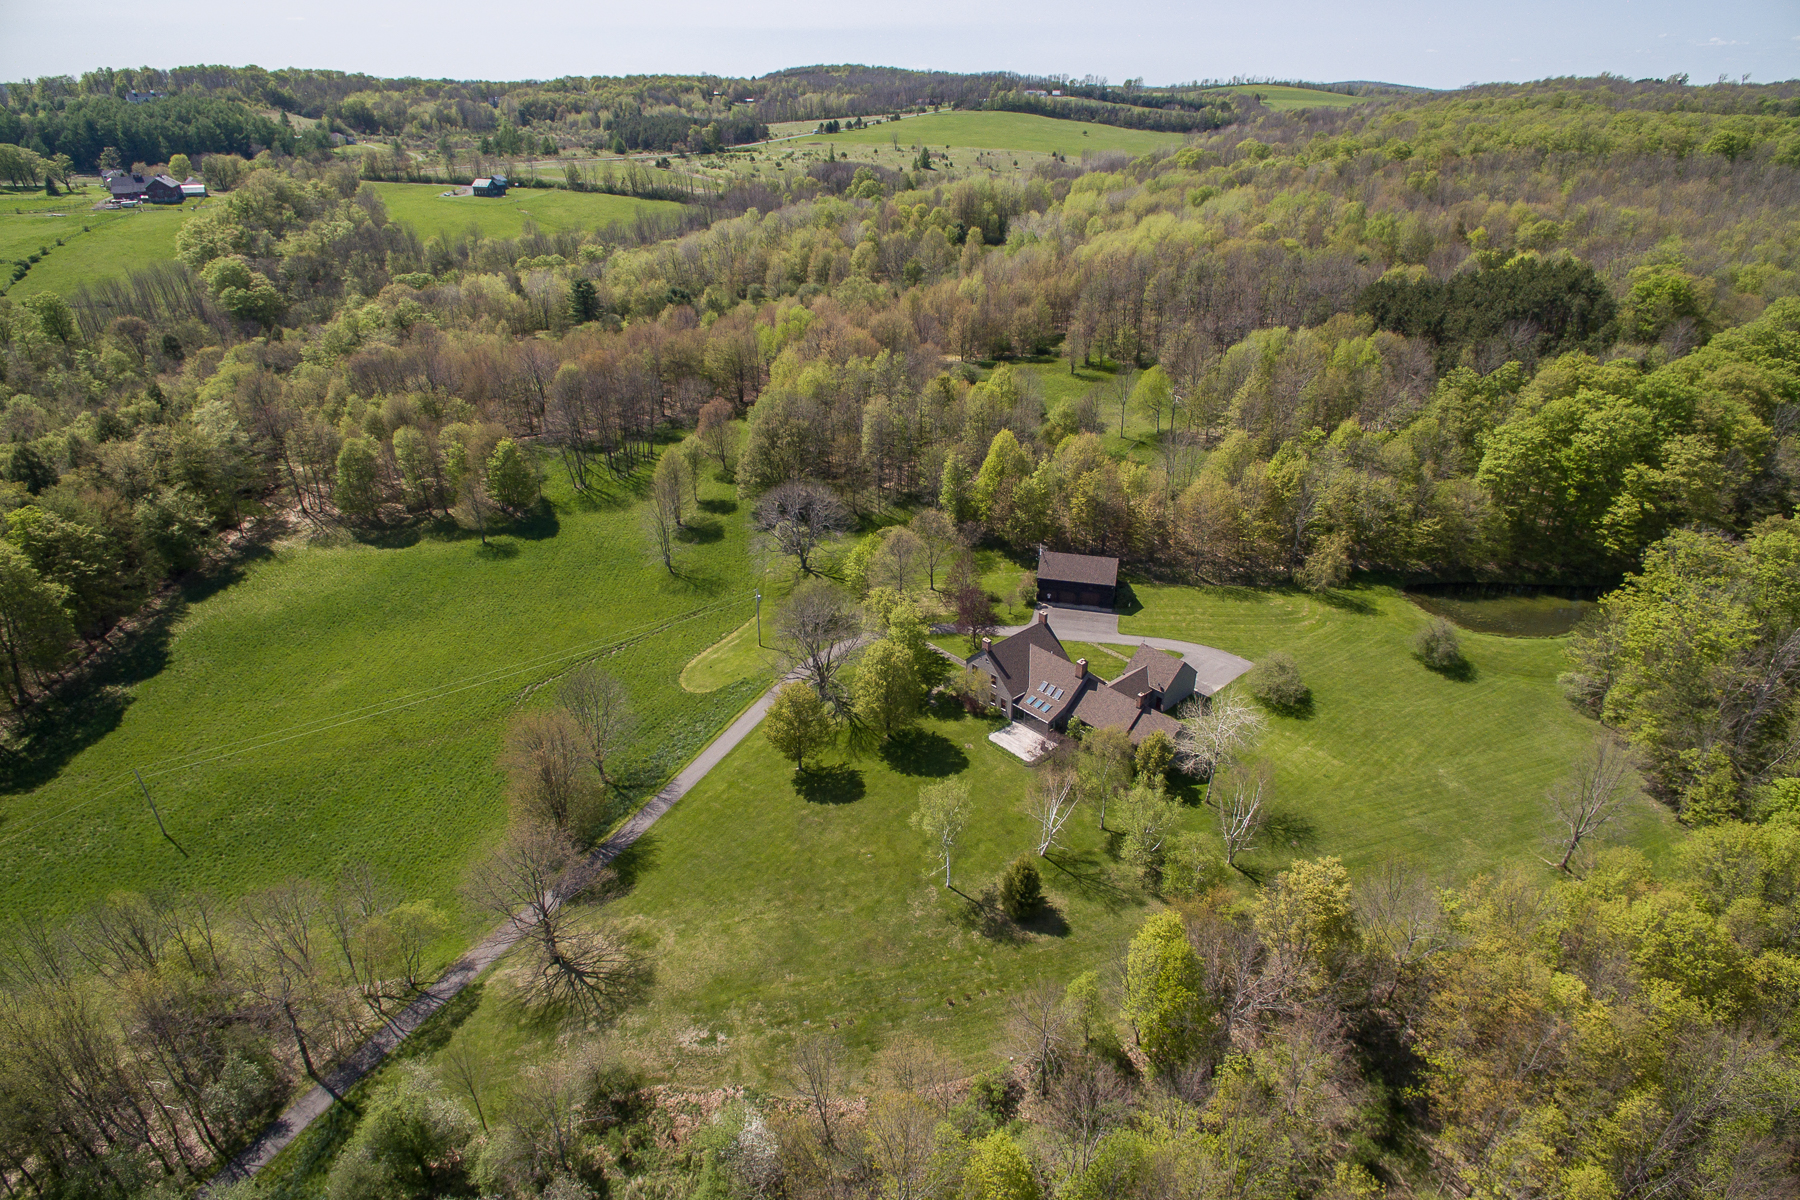 Single Family Home for Sale at Springmeadows 275 Keys Rd Cooperstown, New York 13326 United States